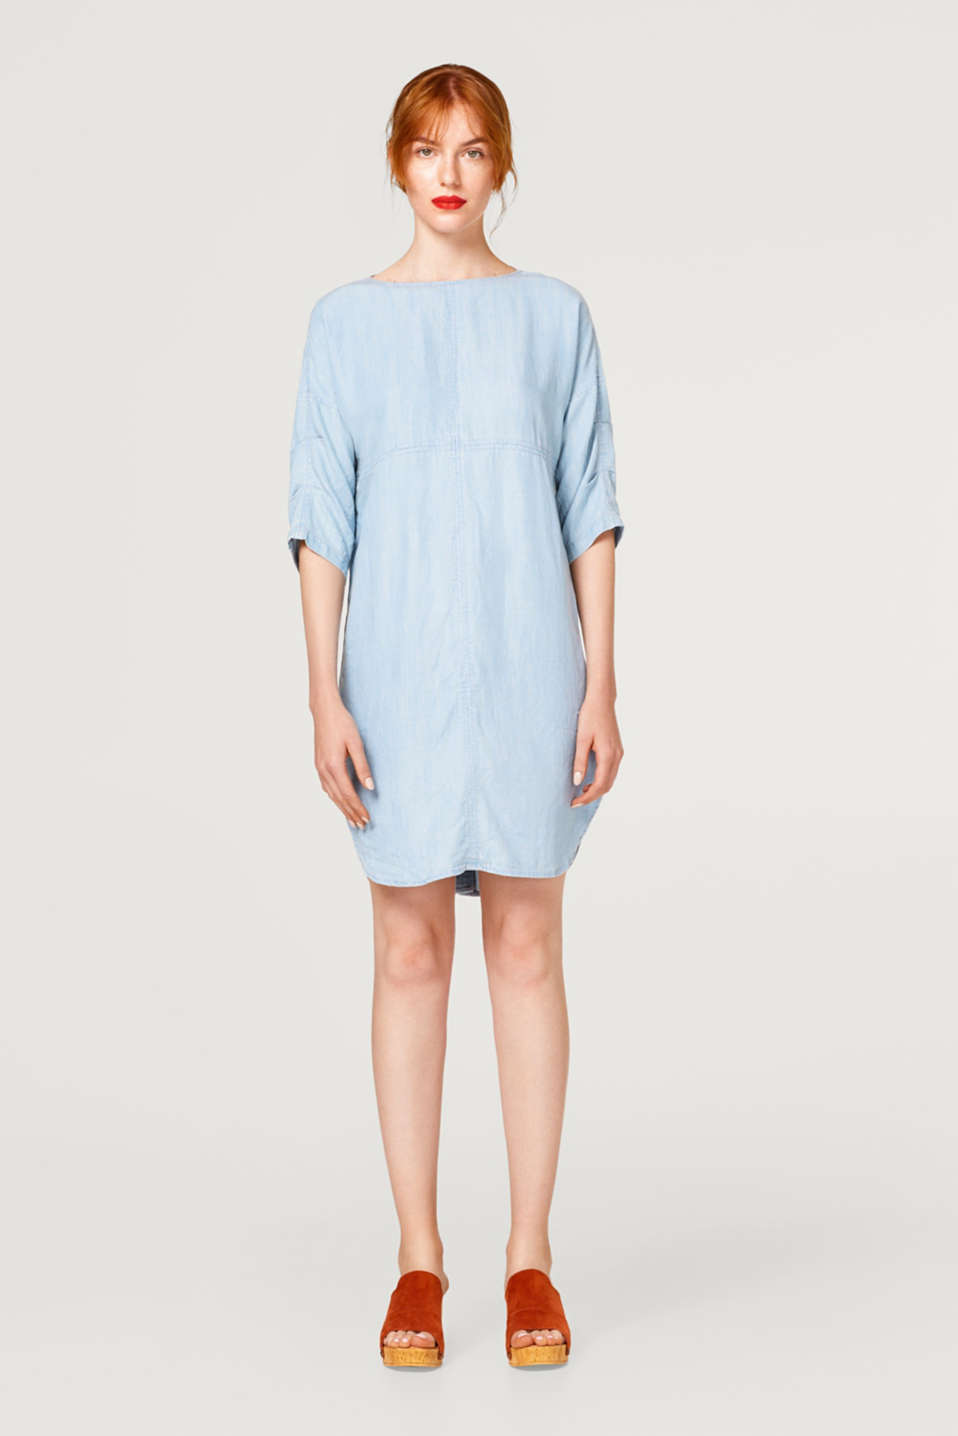 Faded denim-effect dress made of lyocell